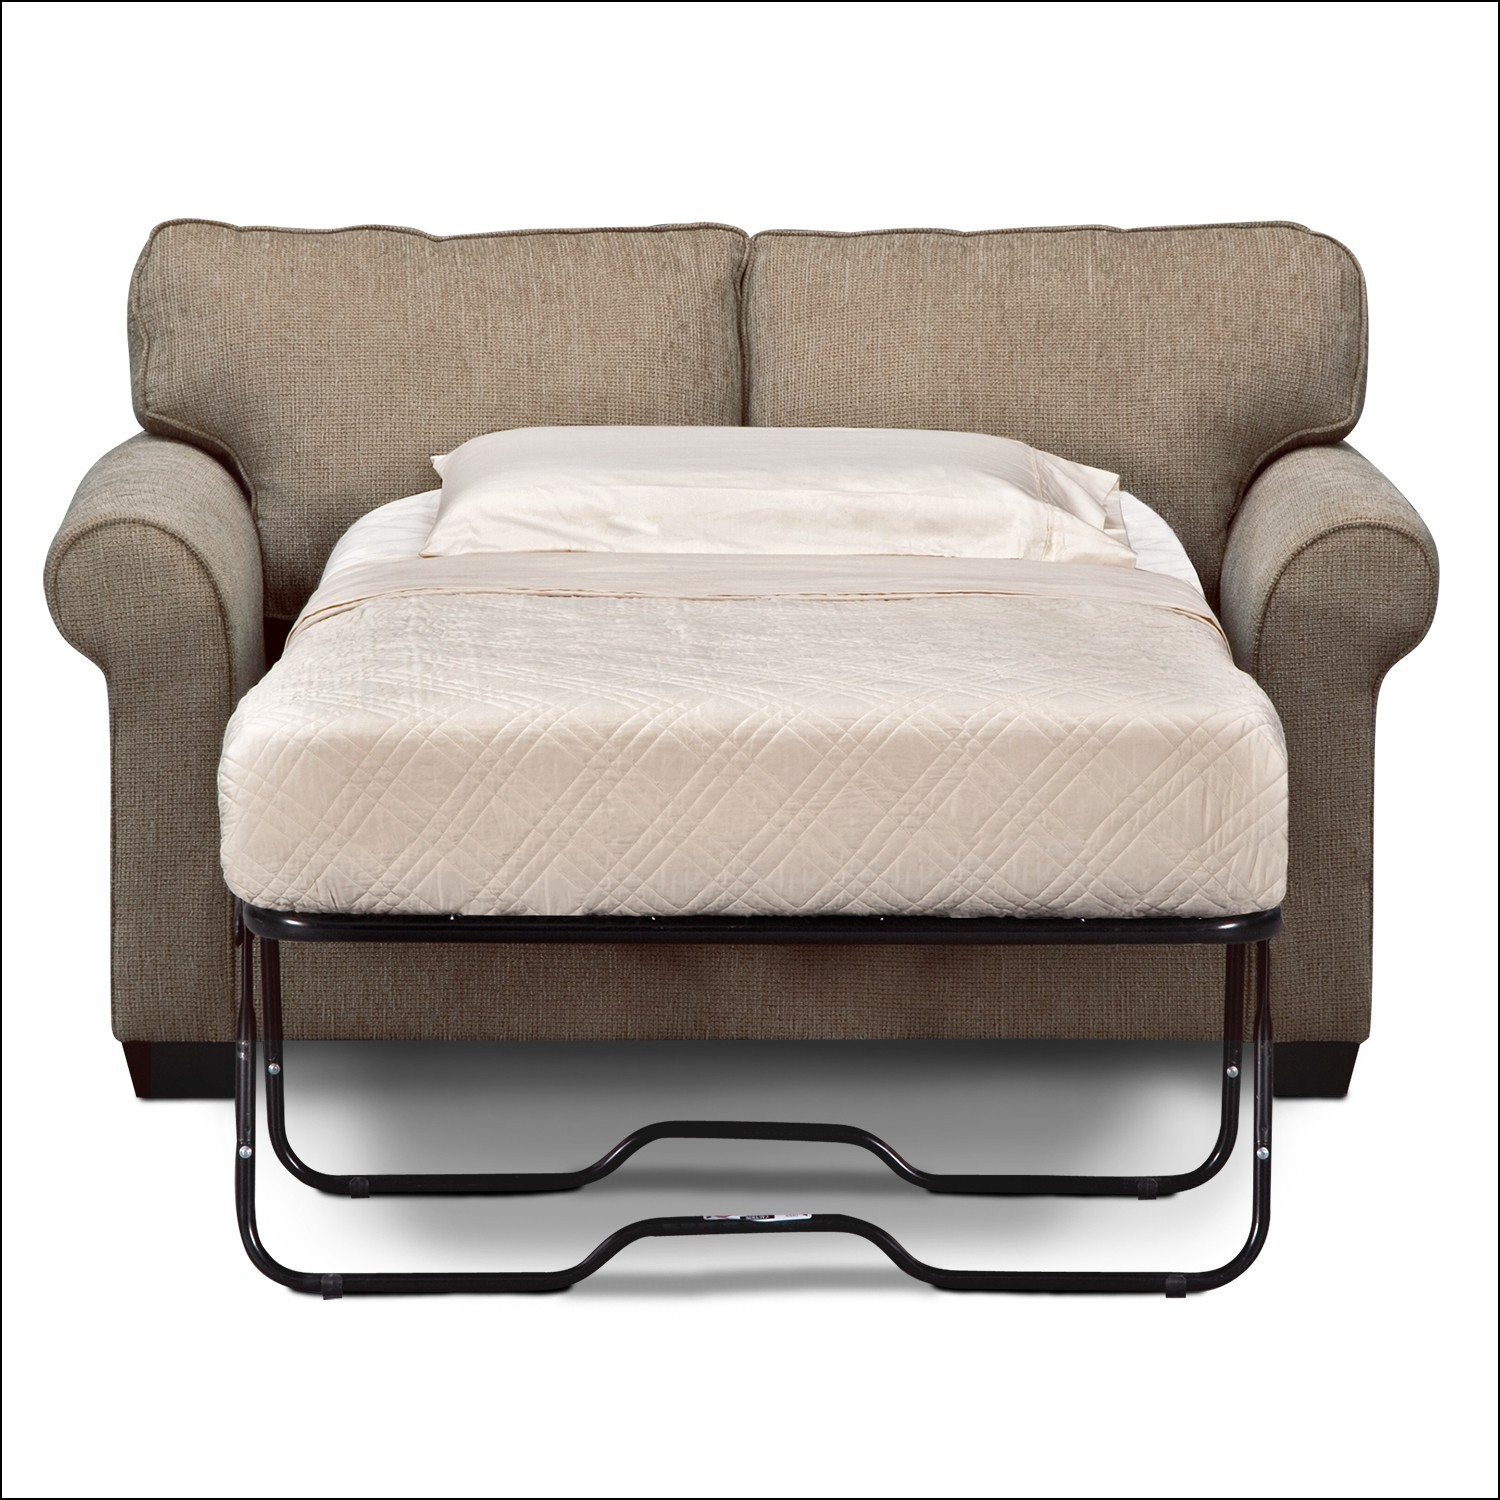 Twin Size Sleeper sofa Amazing Twin Size Sleeper sofa Chairs Couch sofa Gallery Architecture